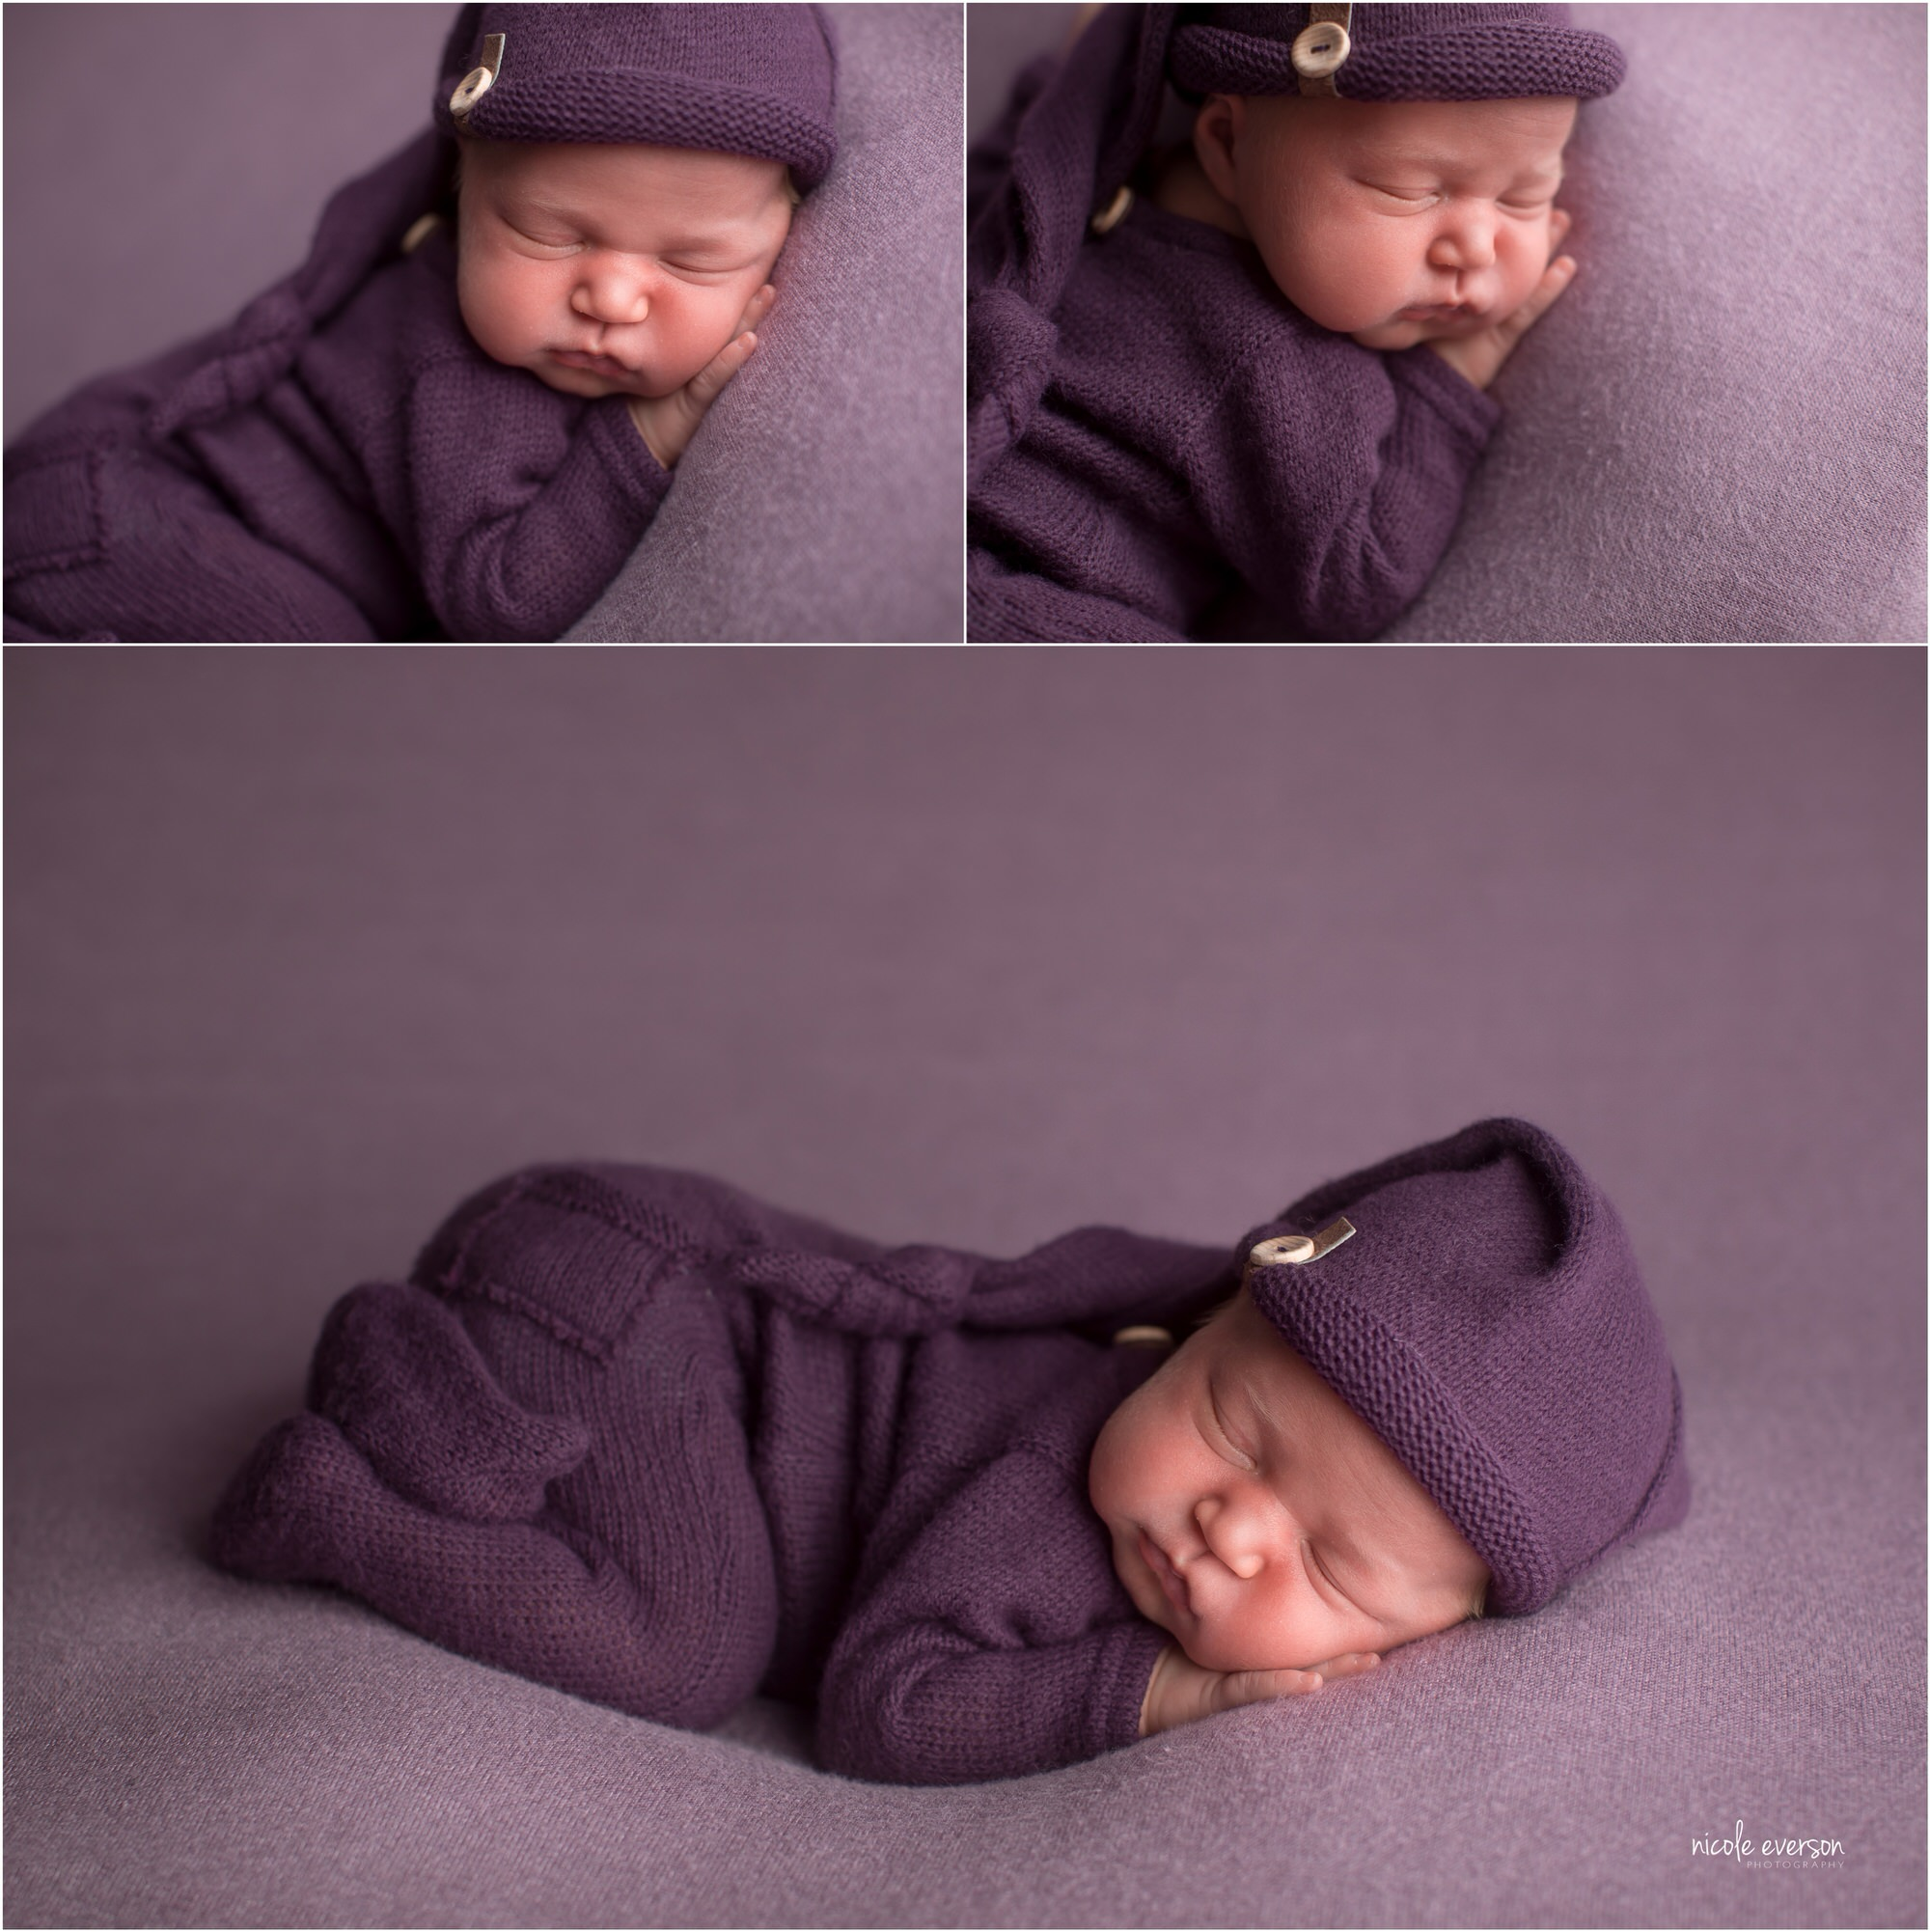 pictures of a sleeping newborn baby girl wearing a purple knit photography prop on a lavender photography backdrop during her newborn photos